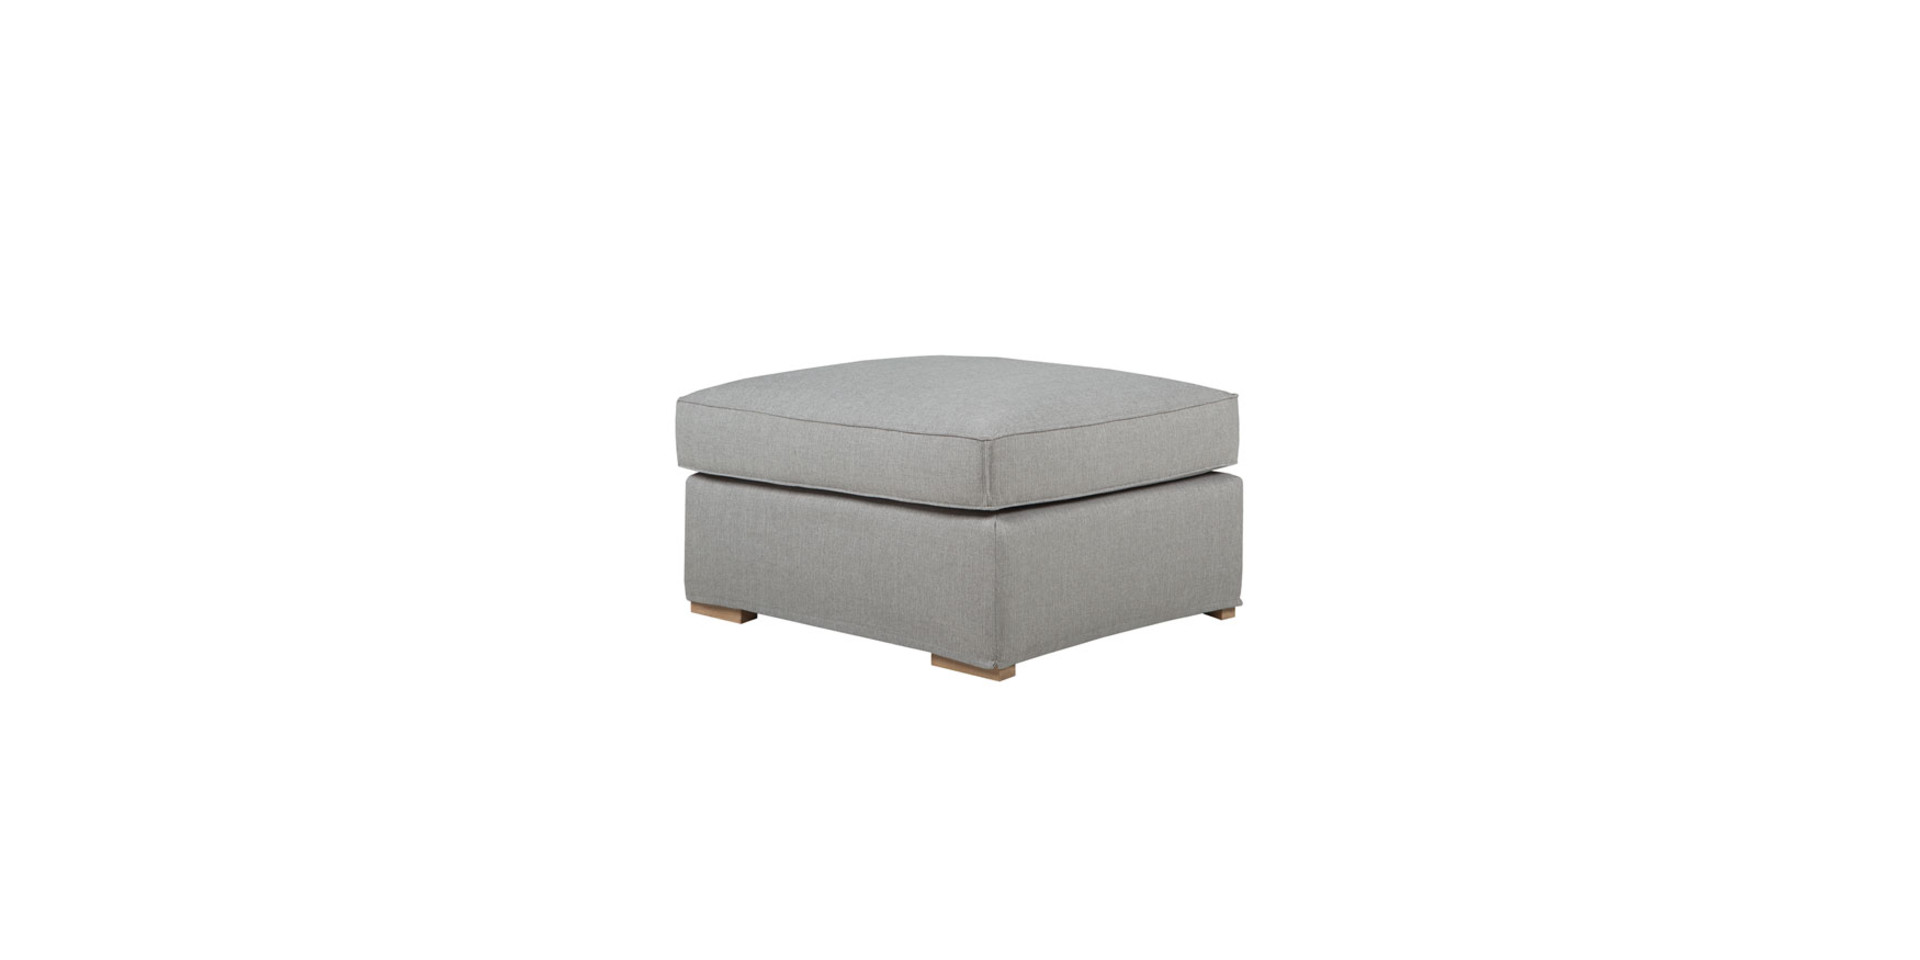 sits-abbe-pouf-footstool_cedros8_light_grey_3